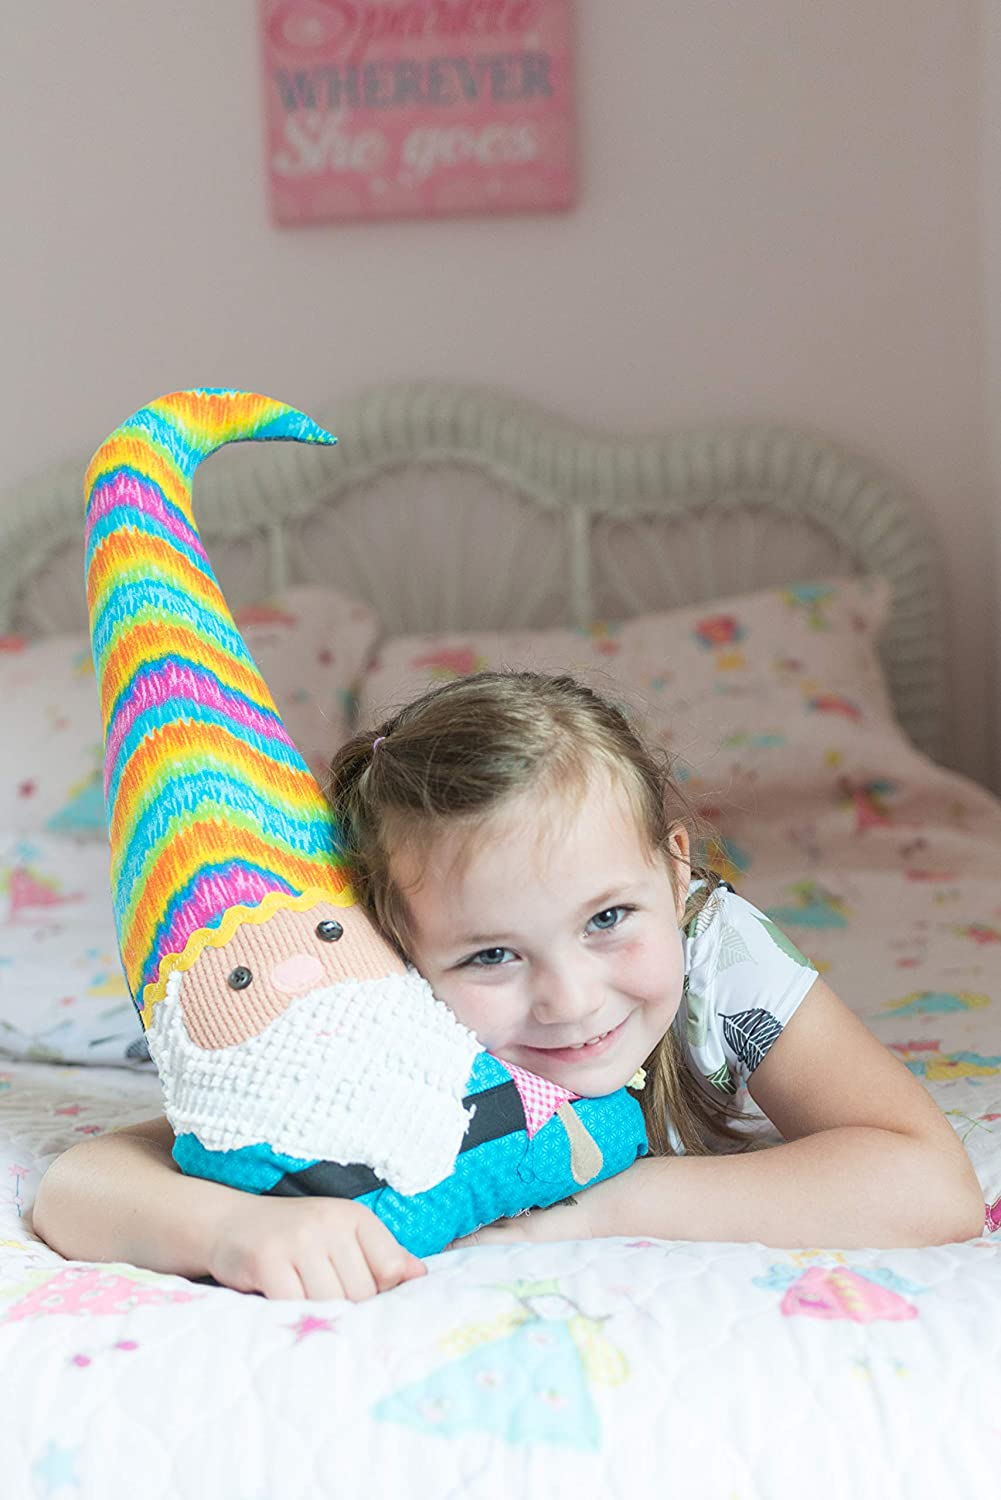 Boho hippie gnome plush doll